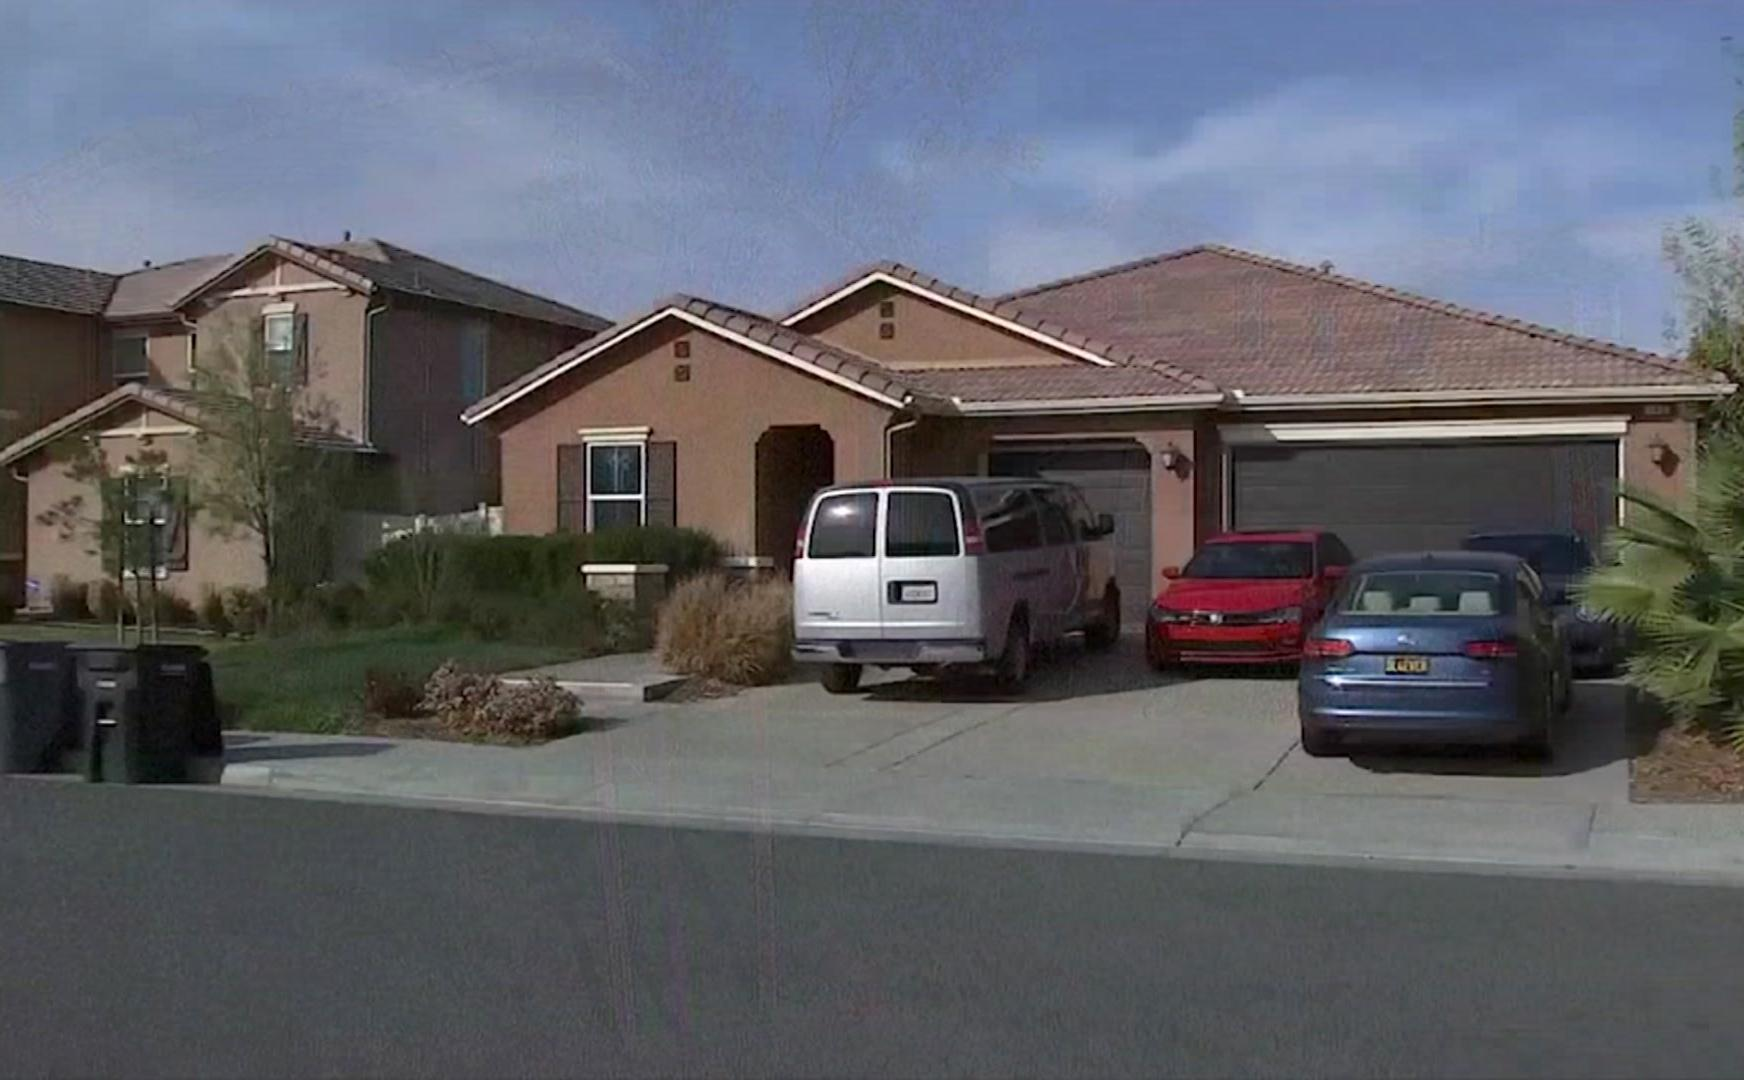 In this grab taken from video provided by KABC-TV on Tuesday, Jan. 16, 2018, the exterior of the home where police arrested a couple accused of holding their 13 children captive, in Perris, east of Los Angeles. Authorities say an emaciated teenager led deputies to a California home where her 12 brothers and sisters were locked up in filthy conditions, with some of them malnourished and chained to beds. (KABC-TV via AP)